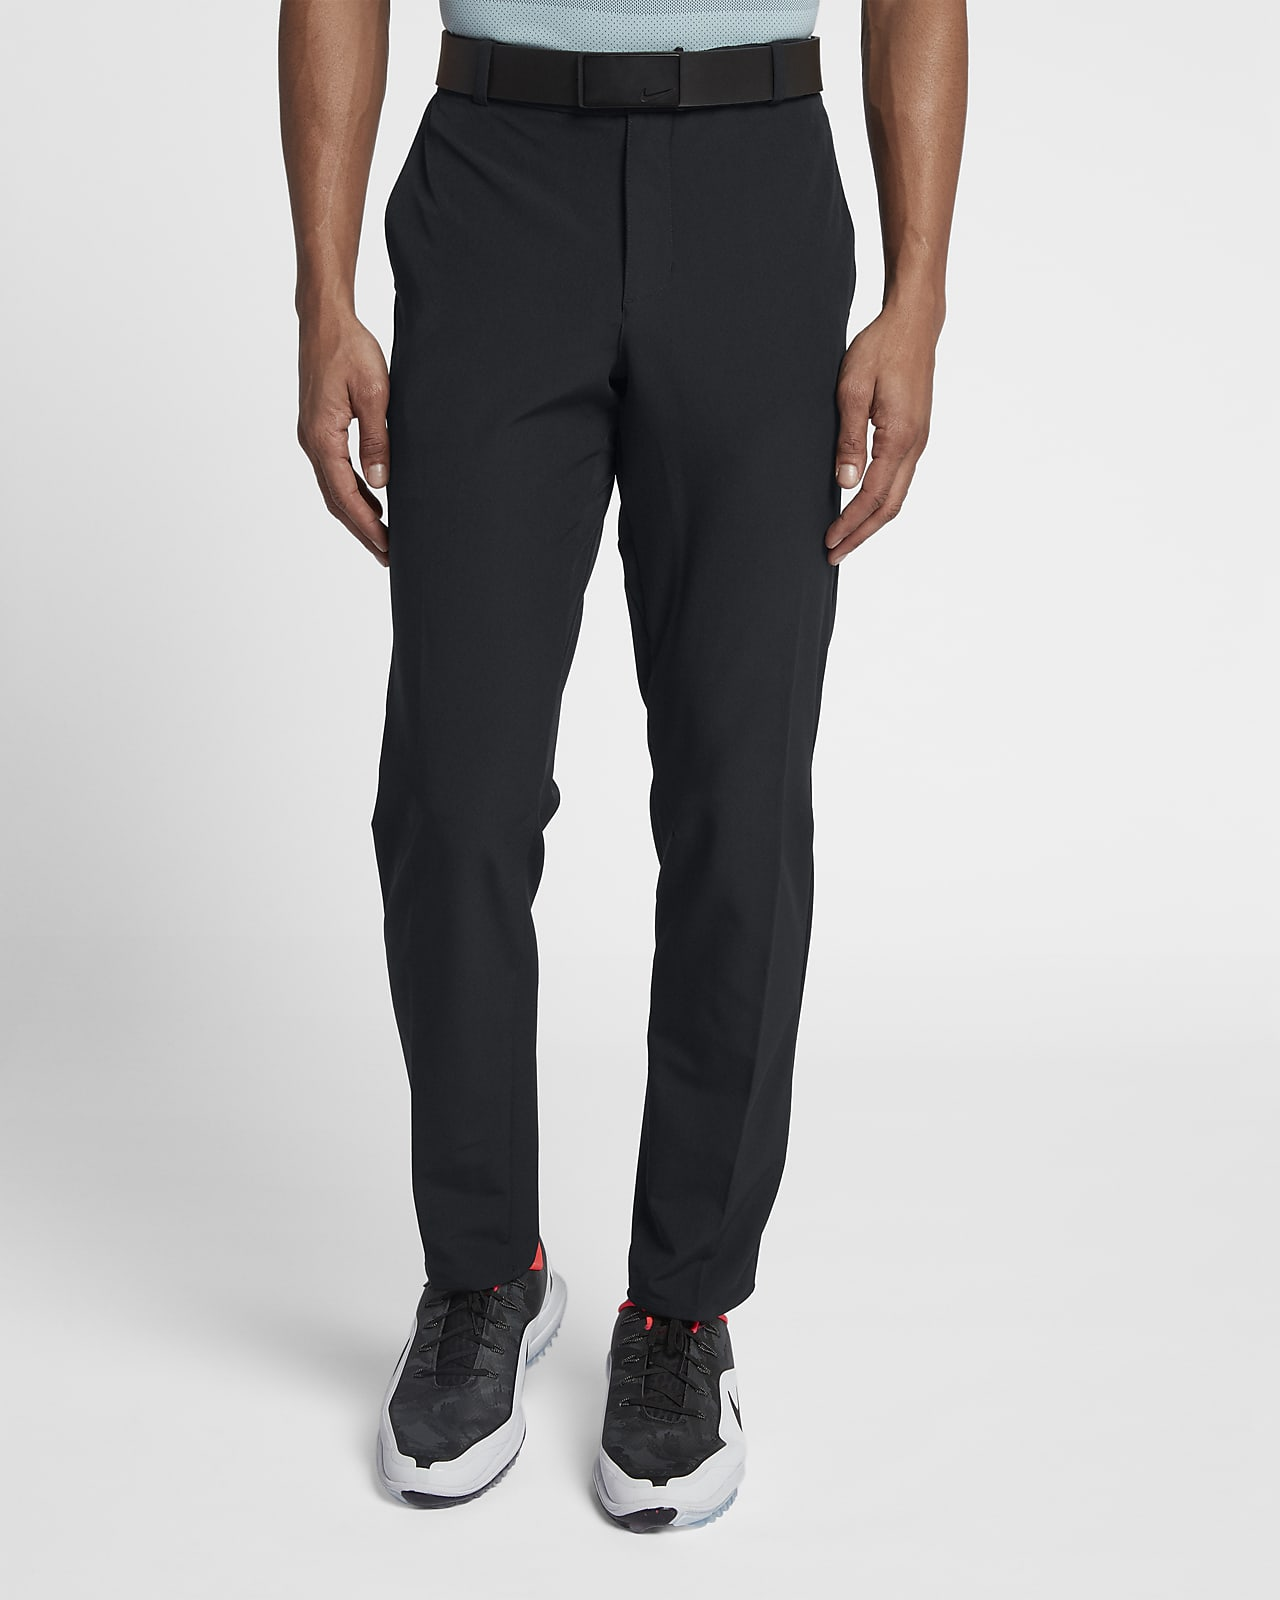 abuela Cliente gemelo  Nike Flex Men's Slim-Fit Golf Trousers. Nike CA